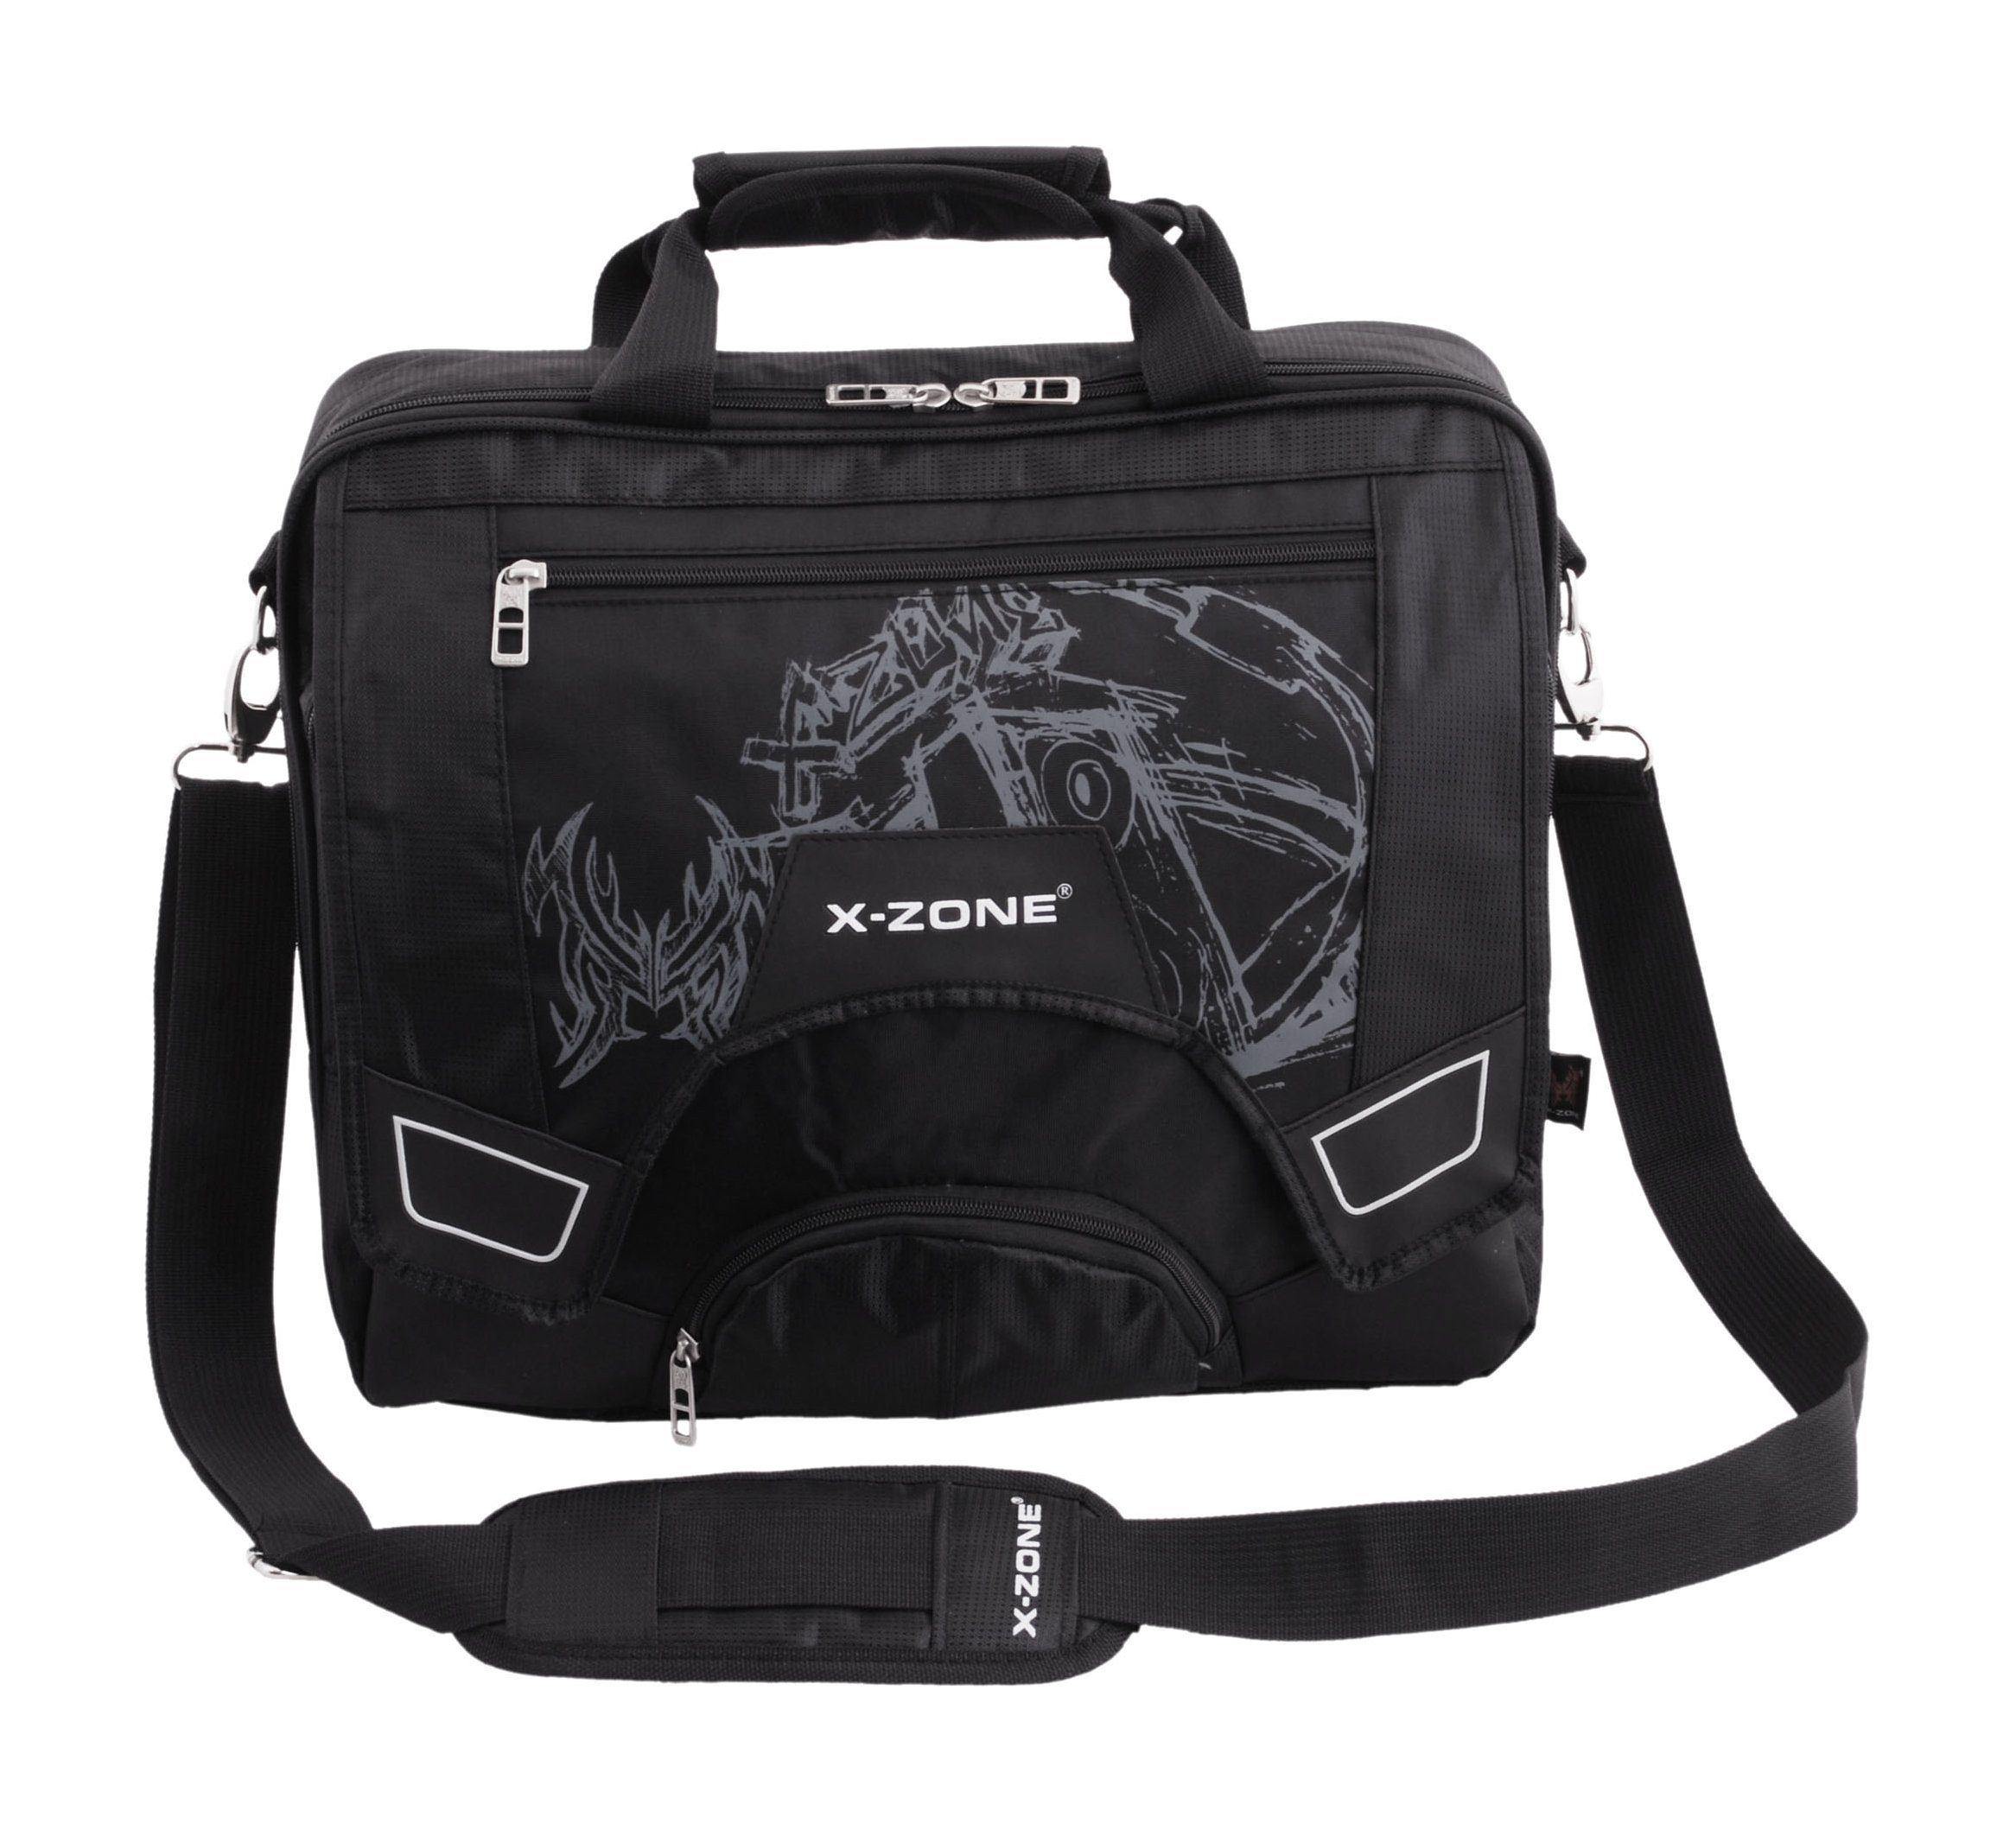 X-Zone Laptoptasche